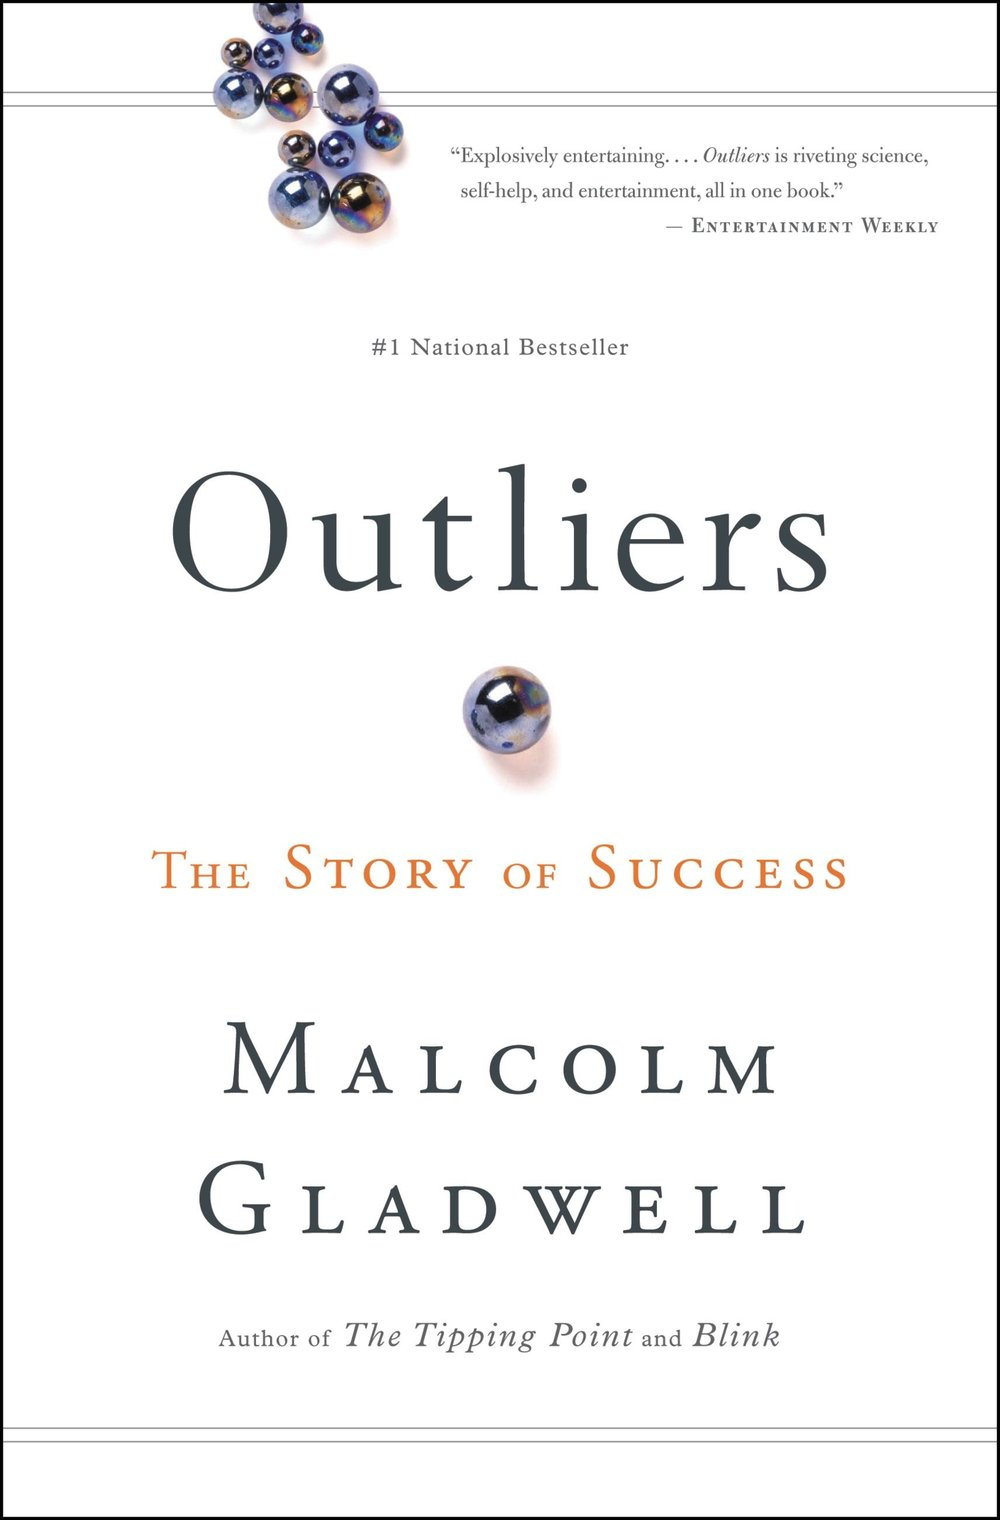 """The lesson here is very simple. But it is striking how often it is overlooked. We are so caught in the myths of the best and the brightest and the self-made that we think outliers spring naturally from the earth. We look at the young Bill Gates and marvel that our world allowed that thirteen-year-old to become a fabulously successful entrepreneur. But that's the wrong lesson. Our world only allowed one thirteen-year-old unlimited access to a time sharing terminal in 1968. If a million teenagers had been given the same opportunity, how many more Microsofts would we have today?"""